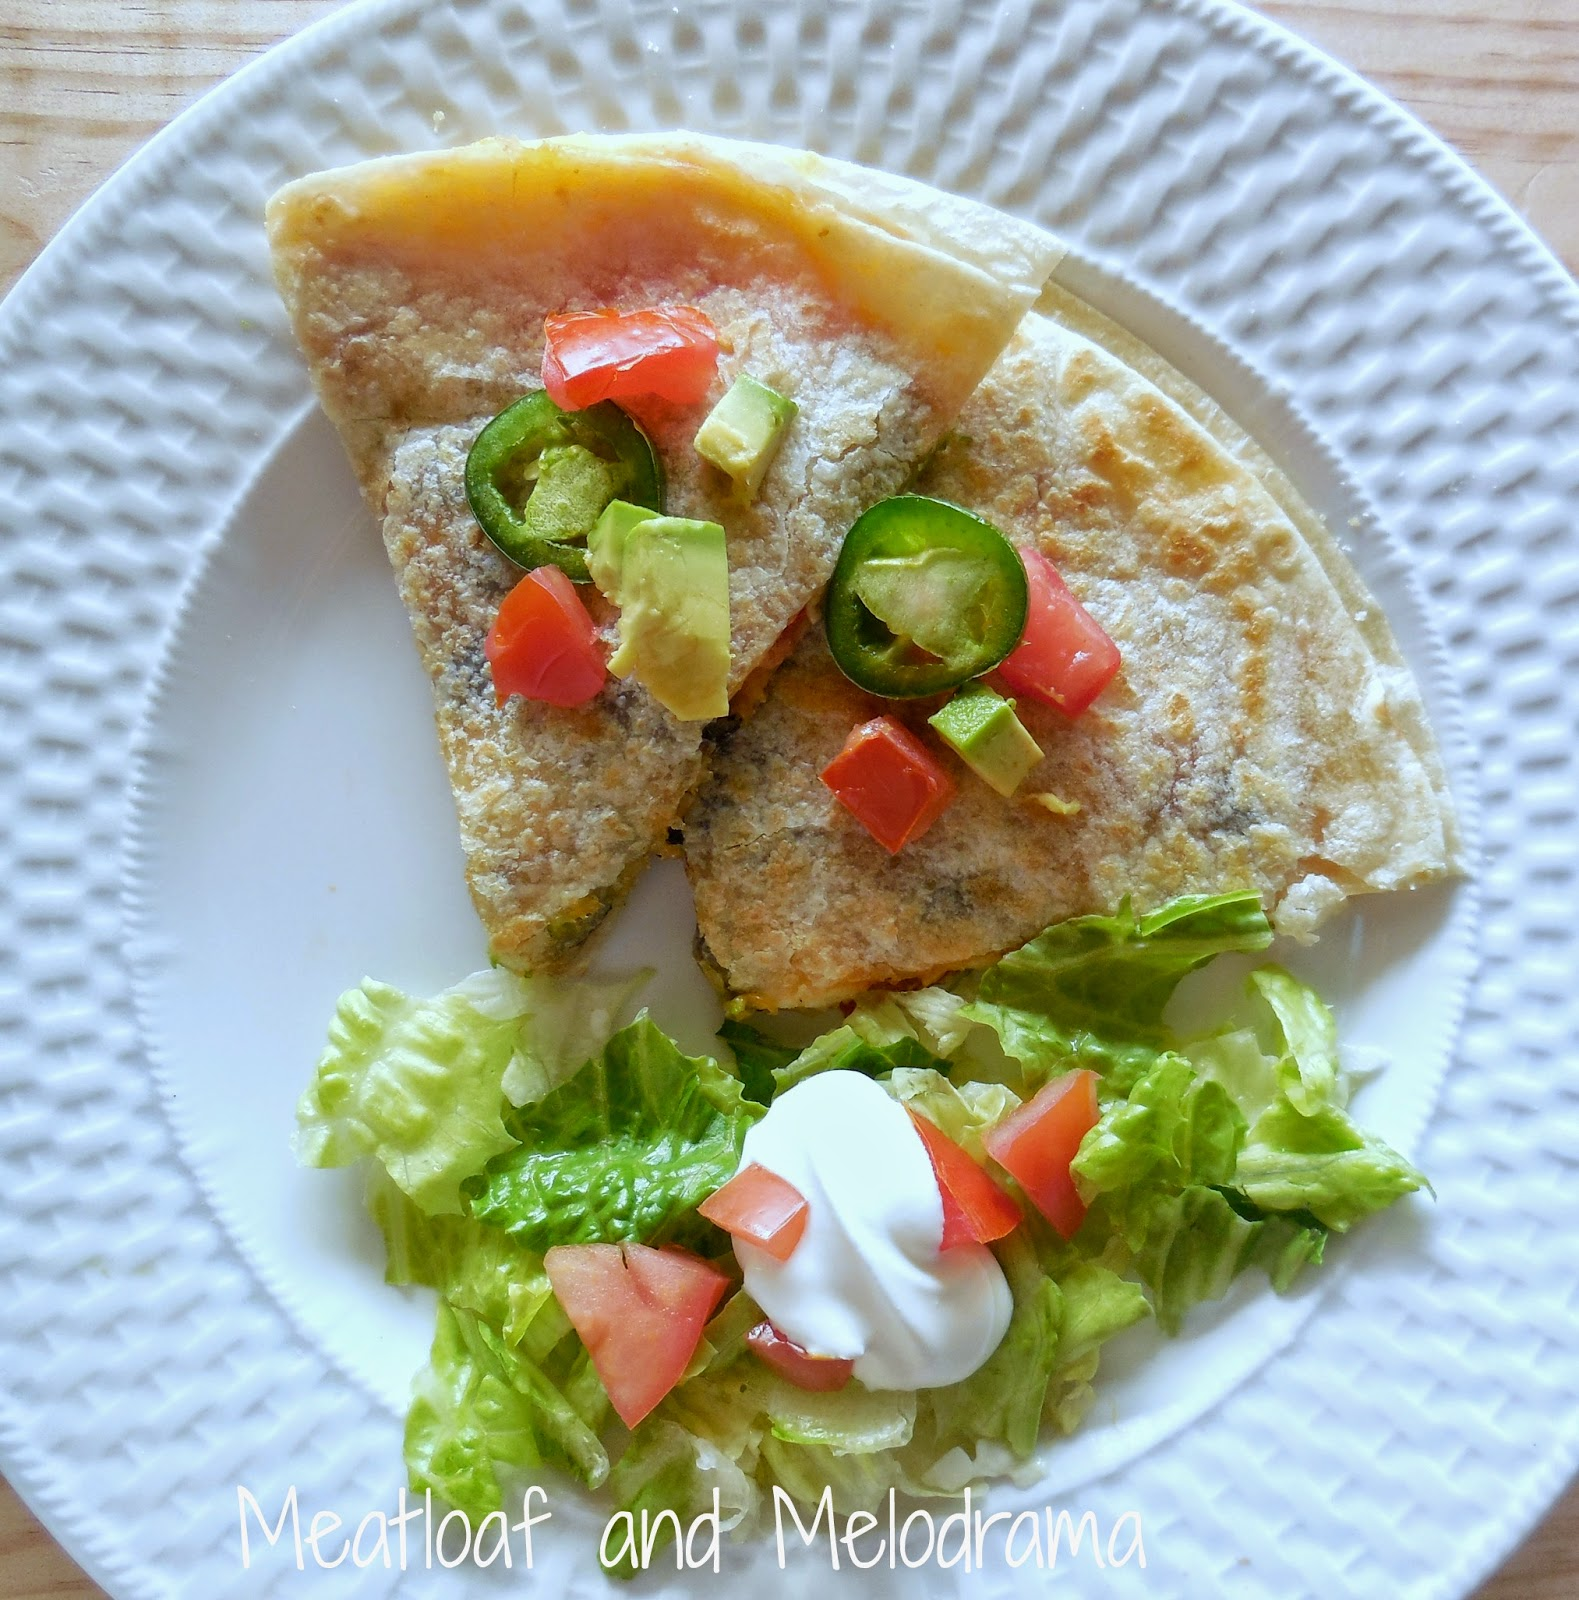 quesadillas with jalapenos, tomatoes, avocados on a plate